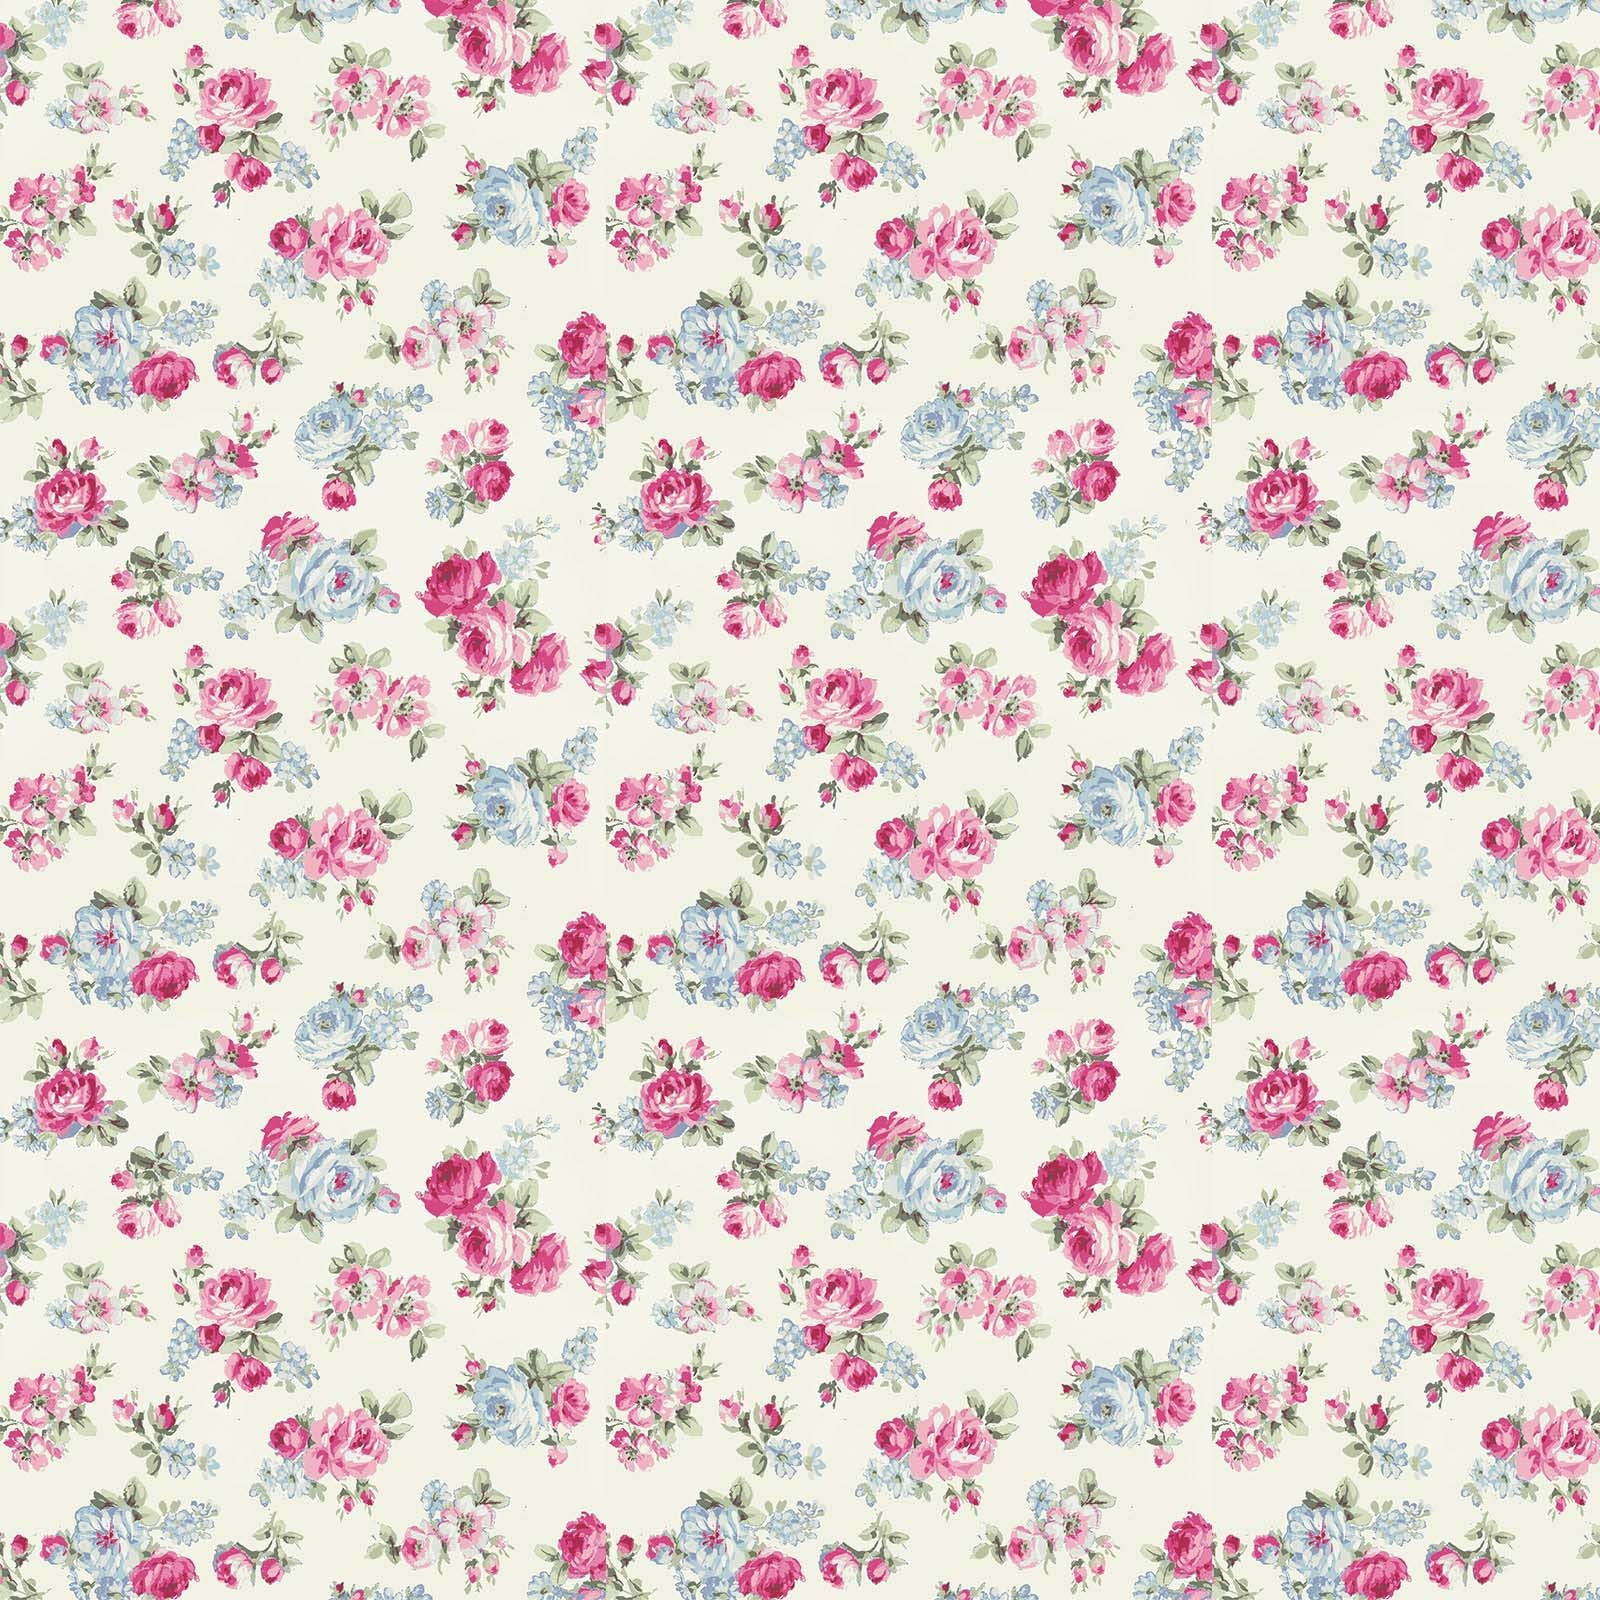 Ruru Rose Bouquet in Paris cotton fabric by Quilt Gate Ru2370-15A Small Roses on Cream